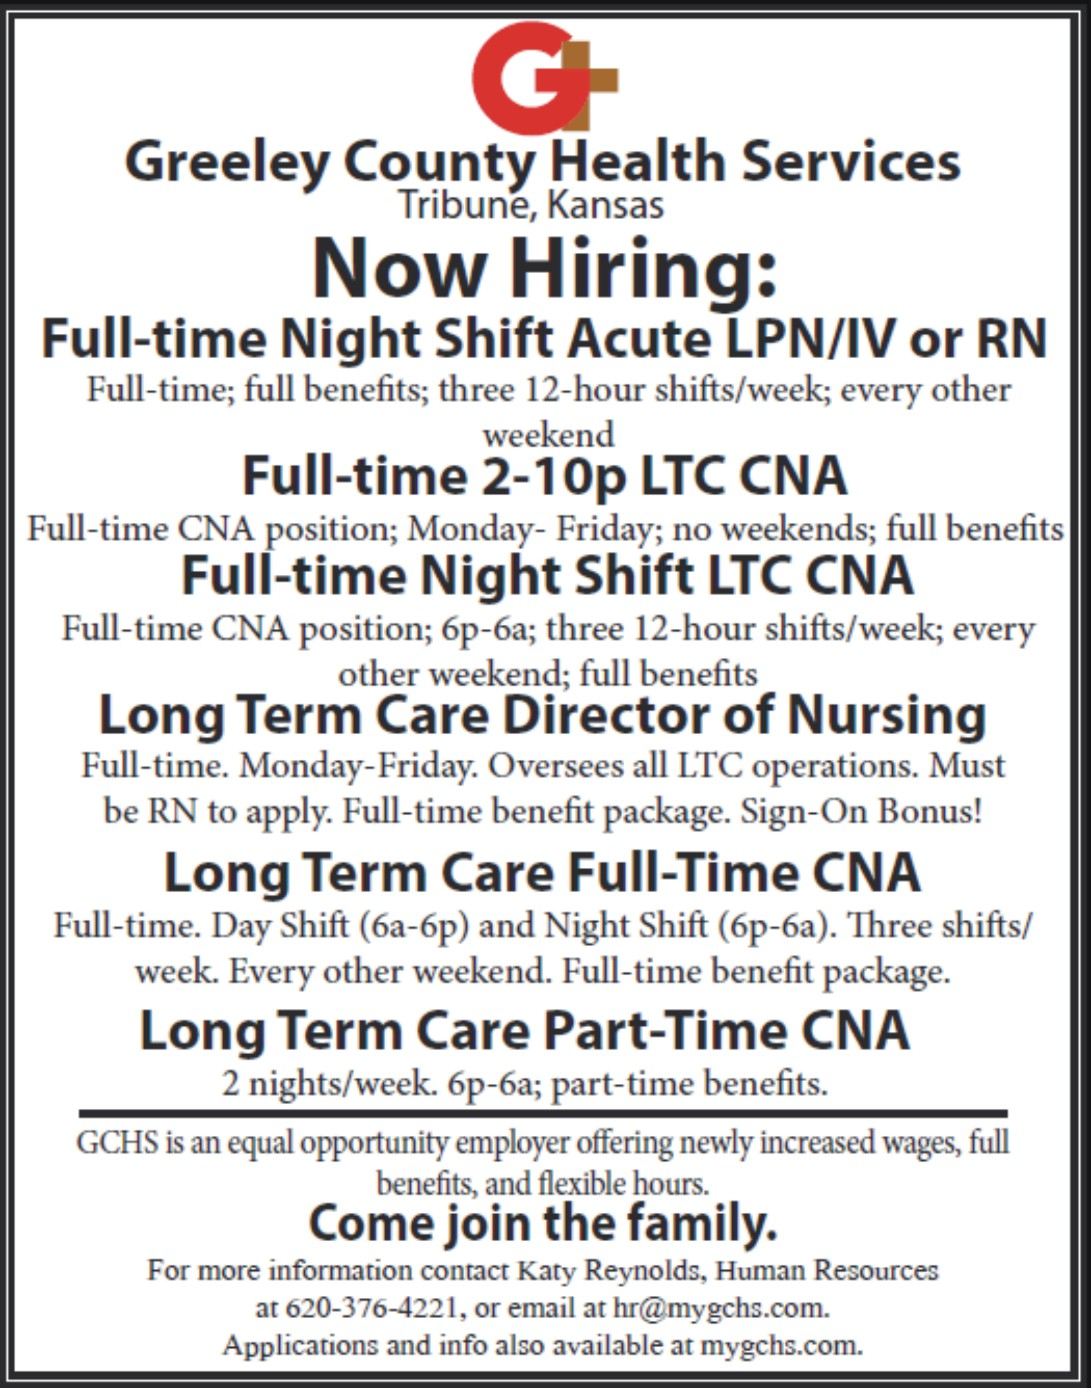 ADV - Greeley County Health Services - Now Hiring - September 8, 2017